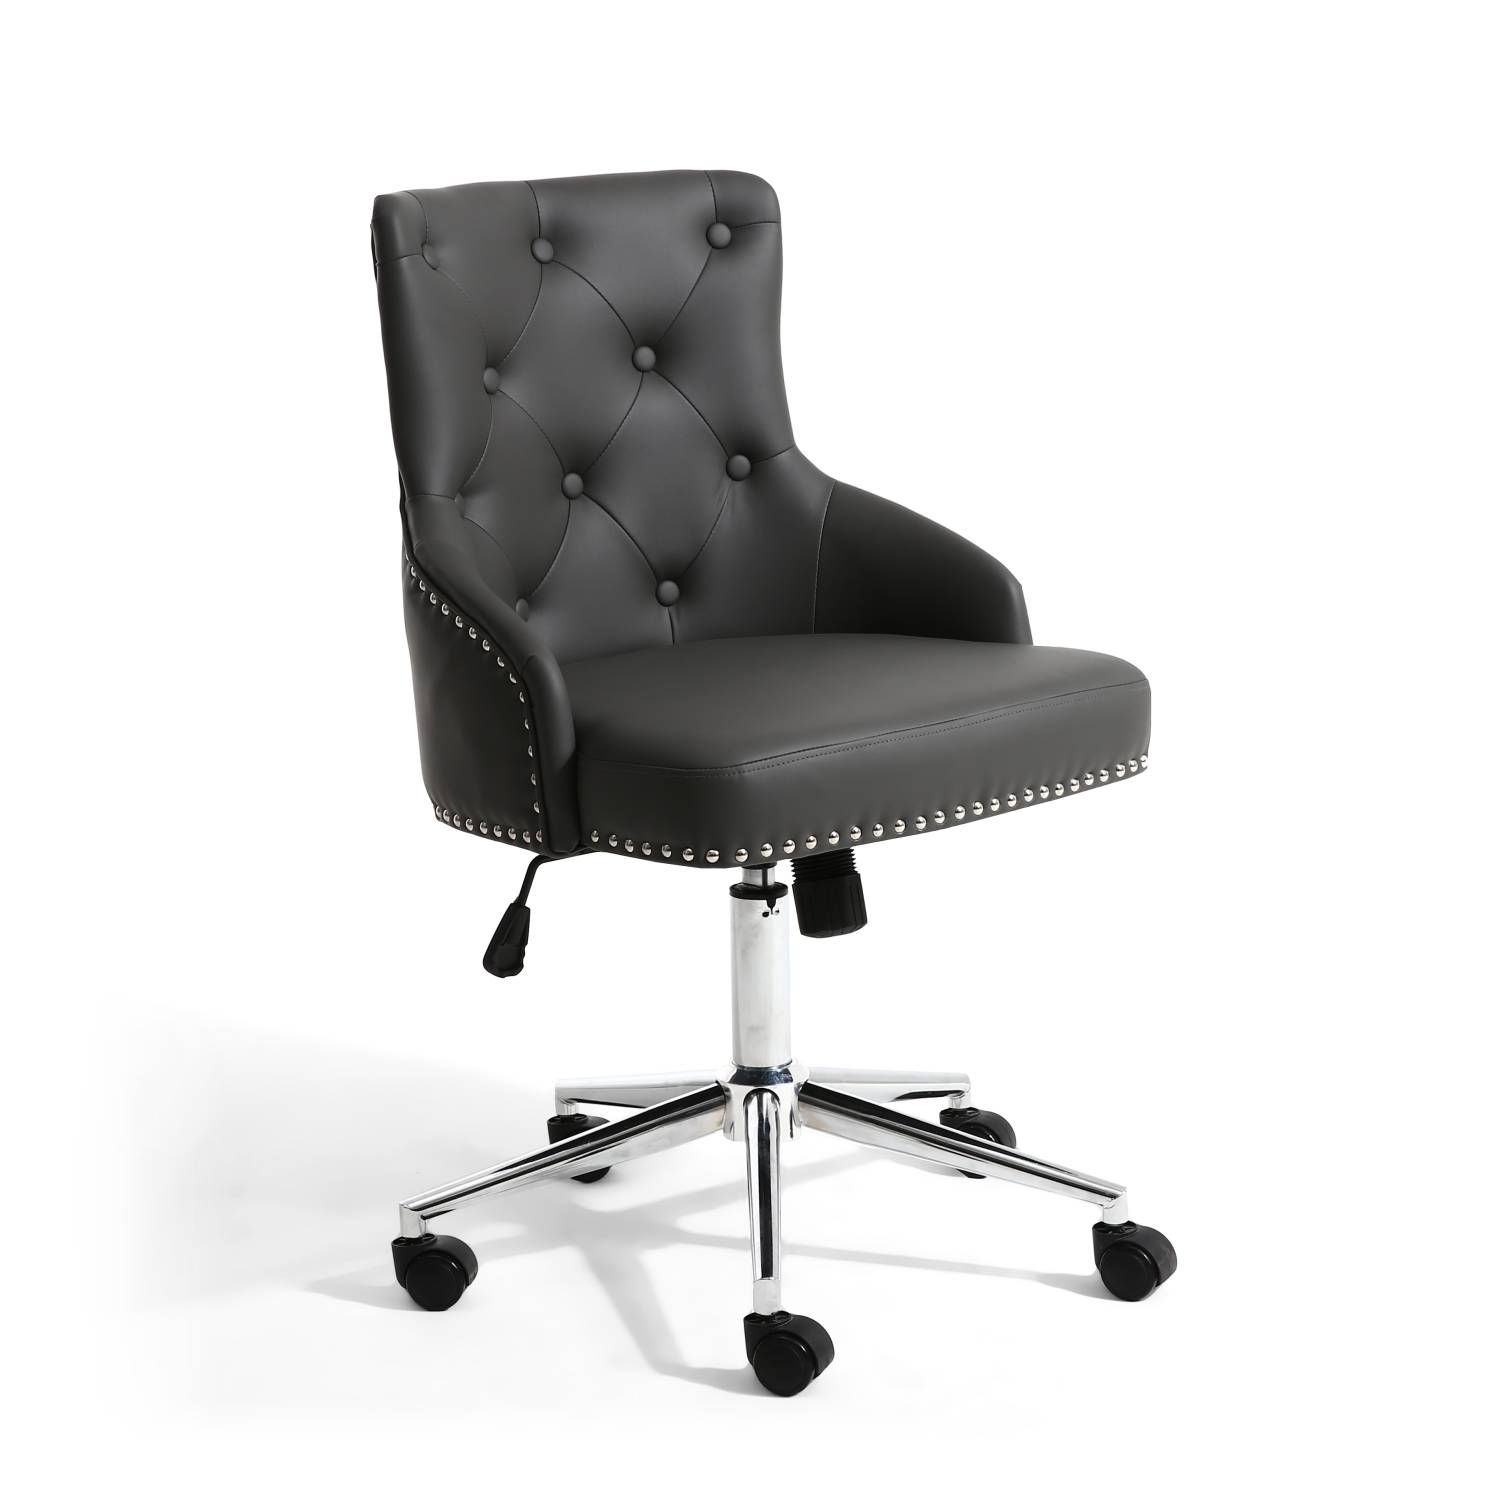 Brent Grey Faux Leather Office chair